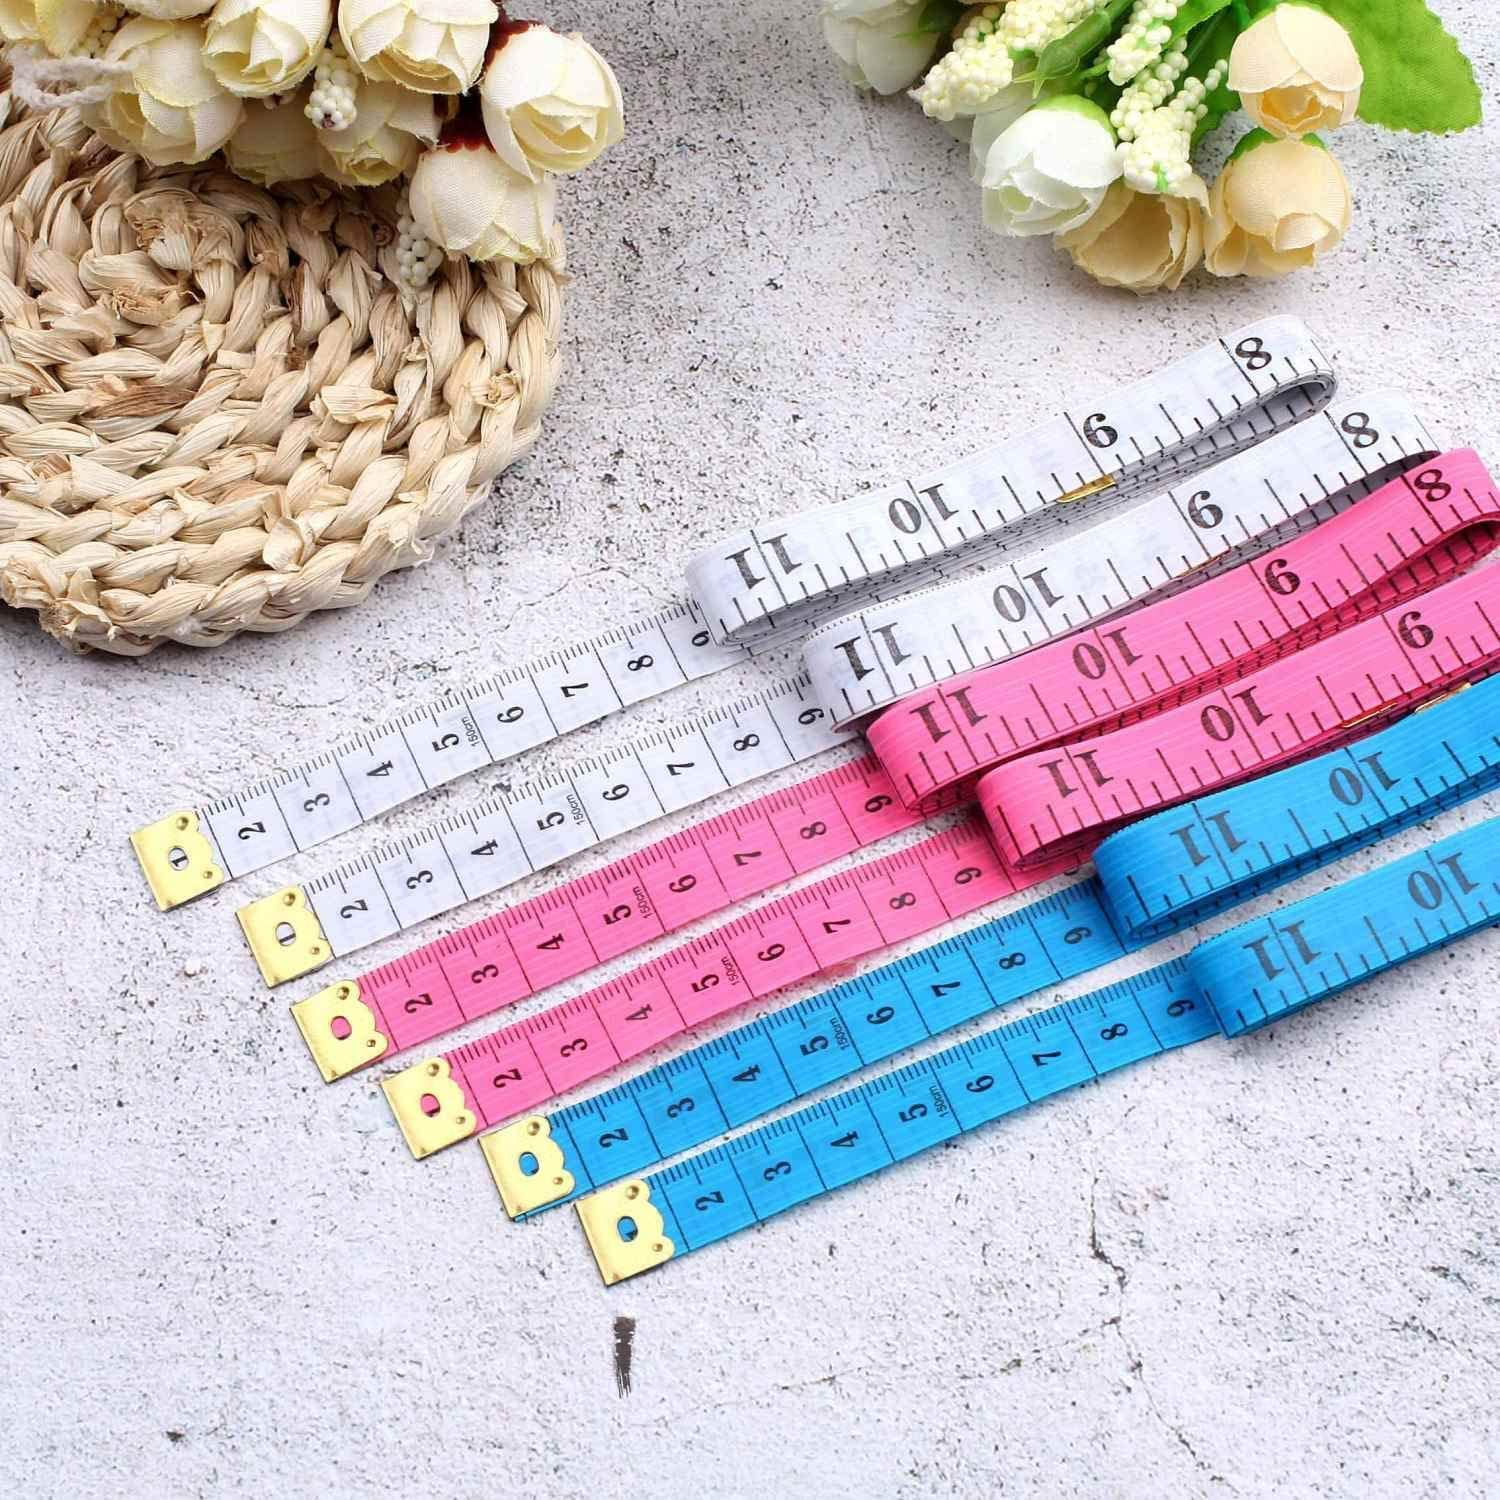 60 Inch 150 cm Soft Tailor Tape Measure for Cloth Sewing Waist Bra Head Circumference Tailor Double Sided Cloth Ruler (1pcs) Blue